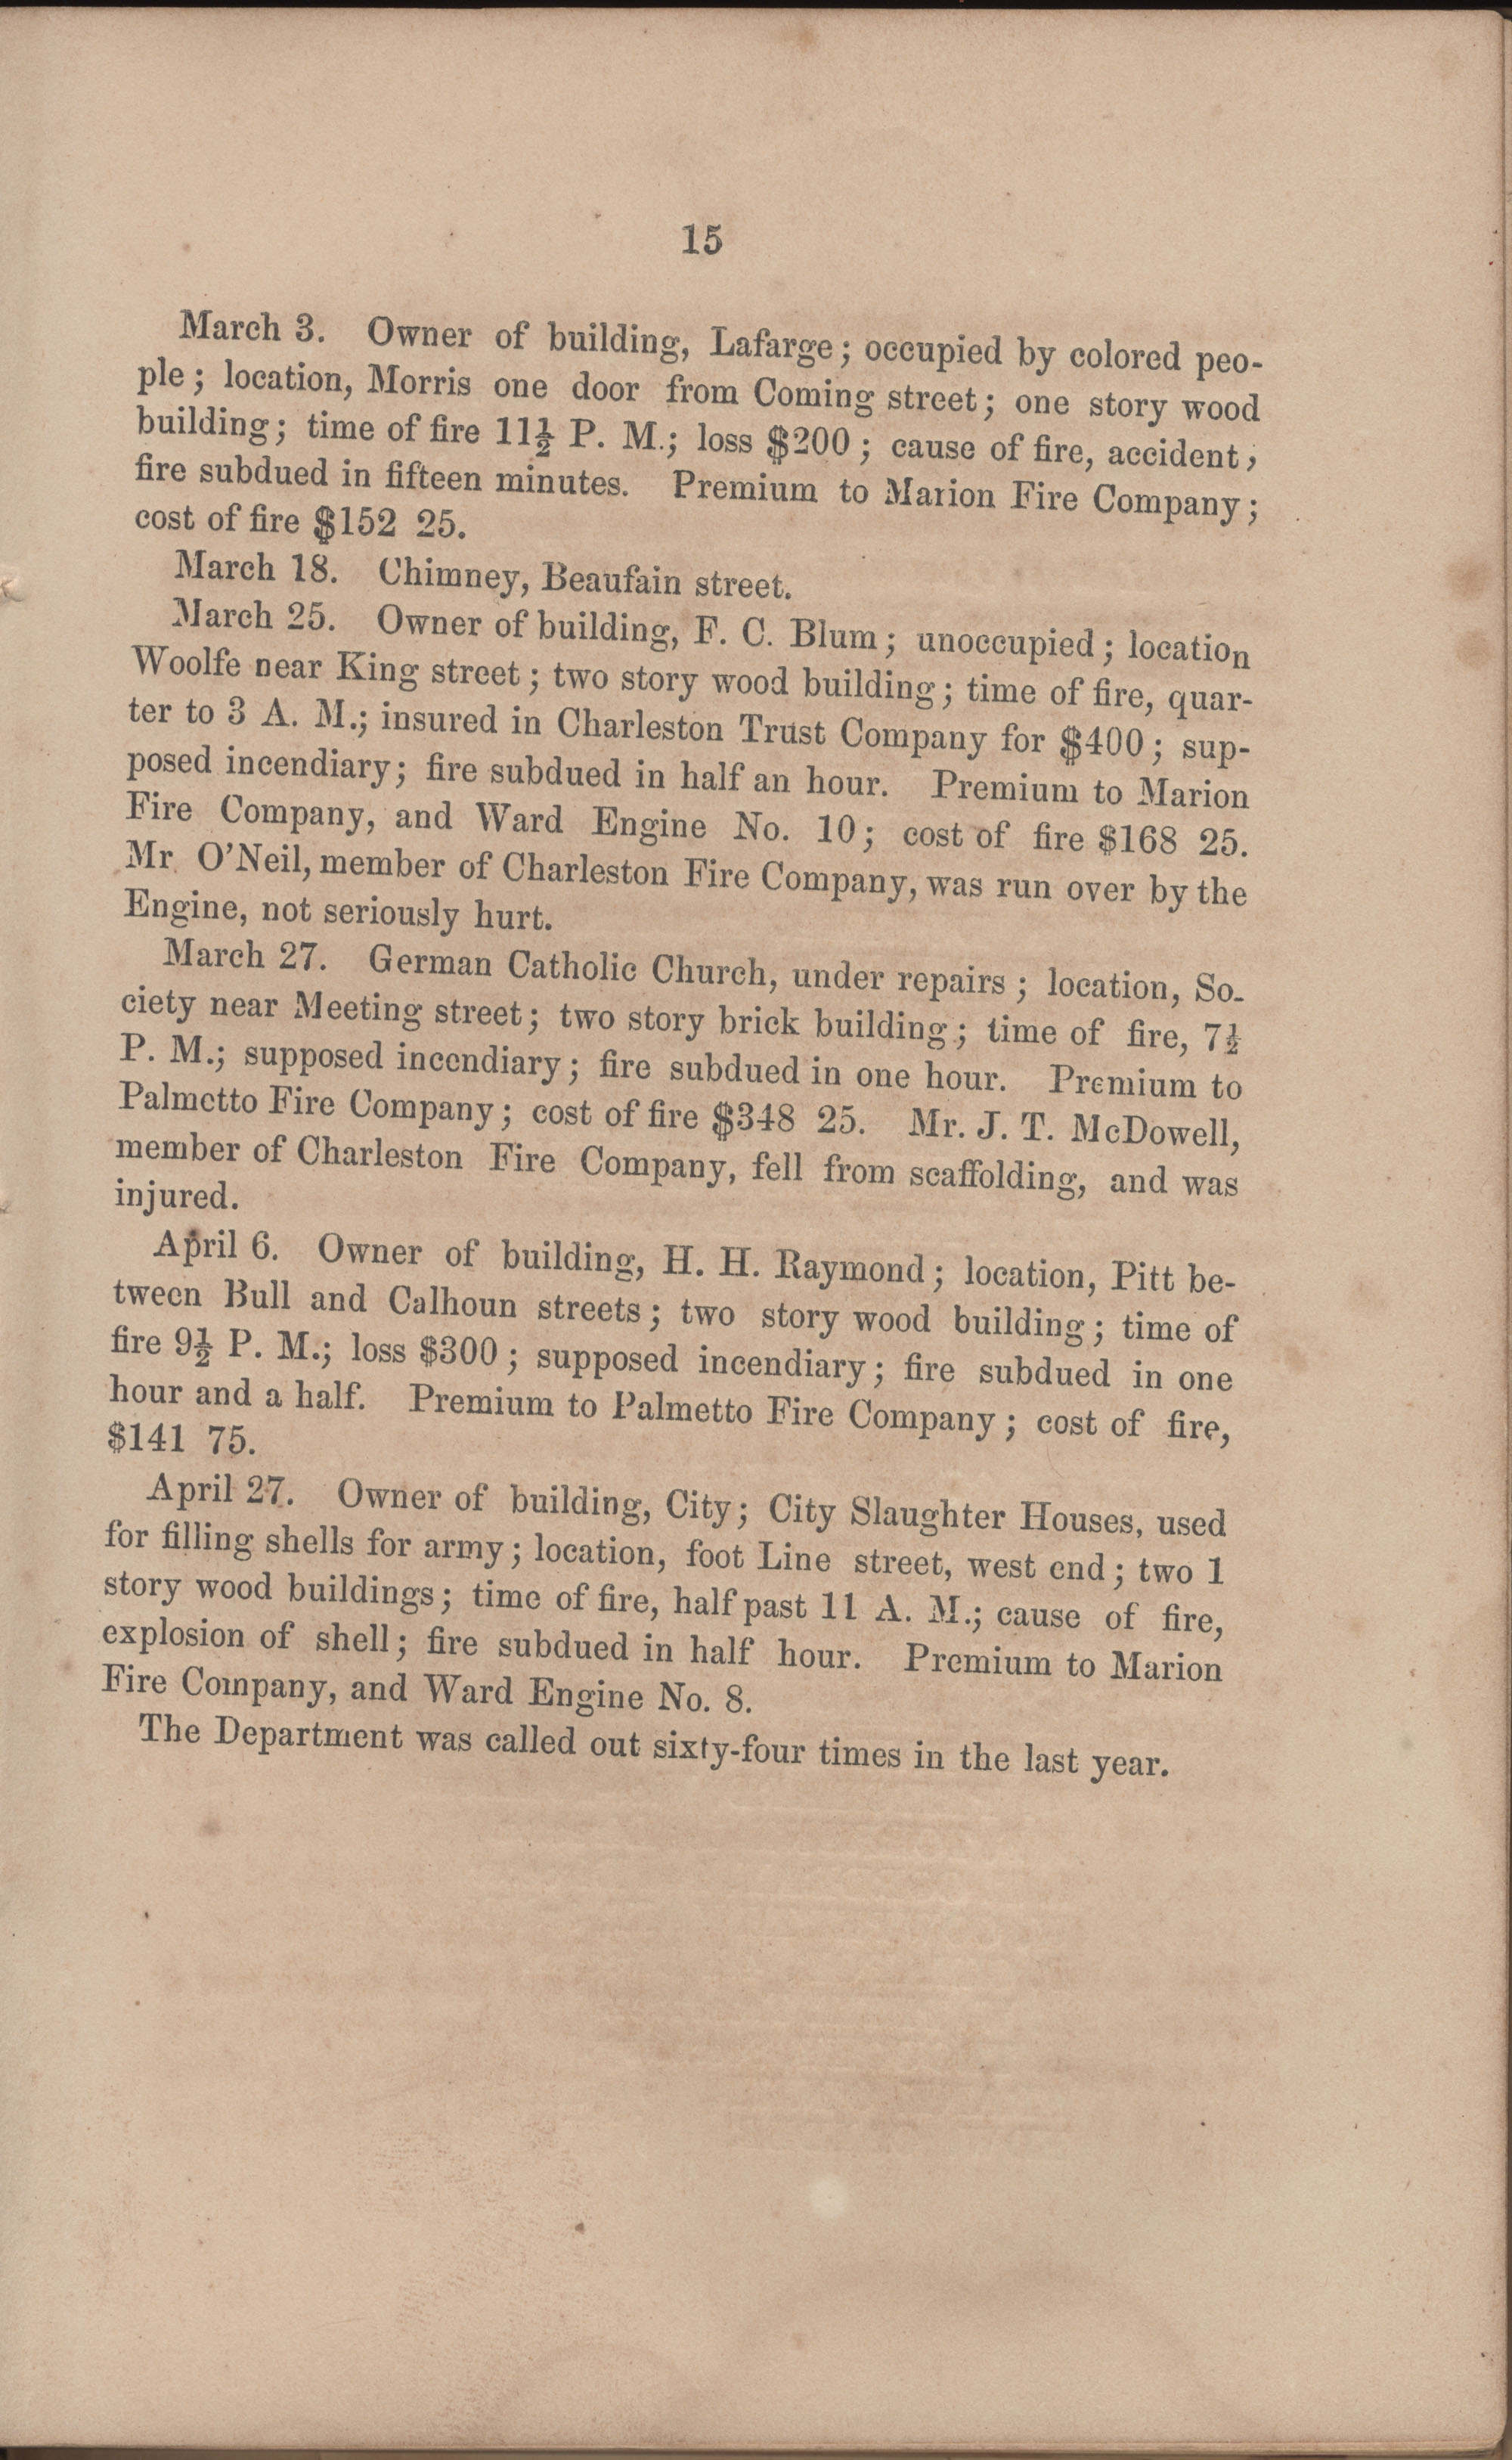 Annual Report of the Chief of the Fire Department of the City of Charleston, page 76